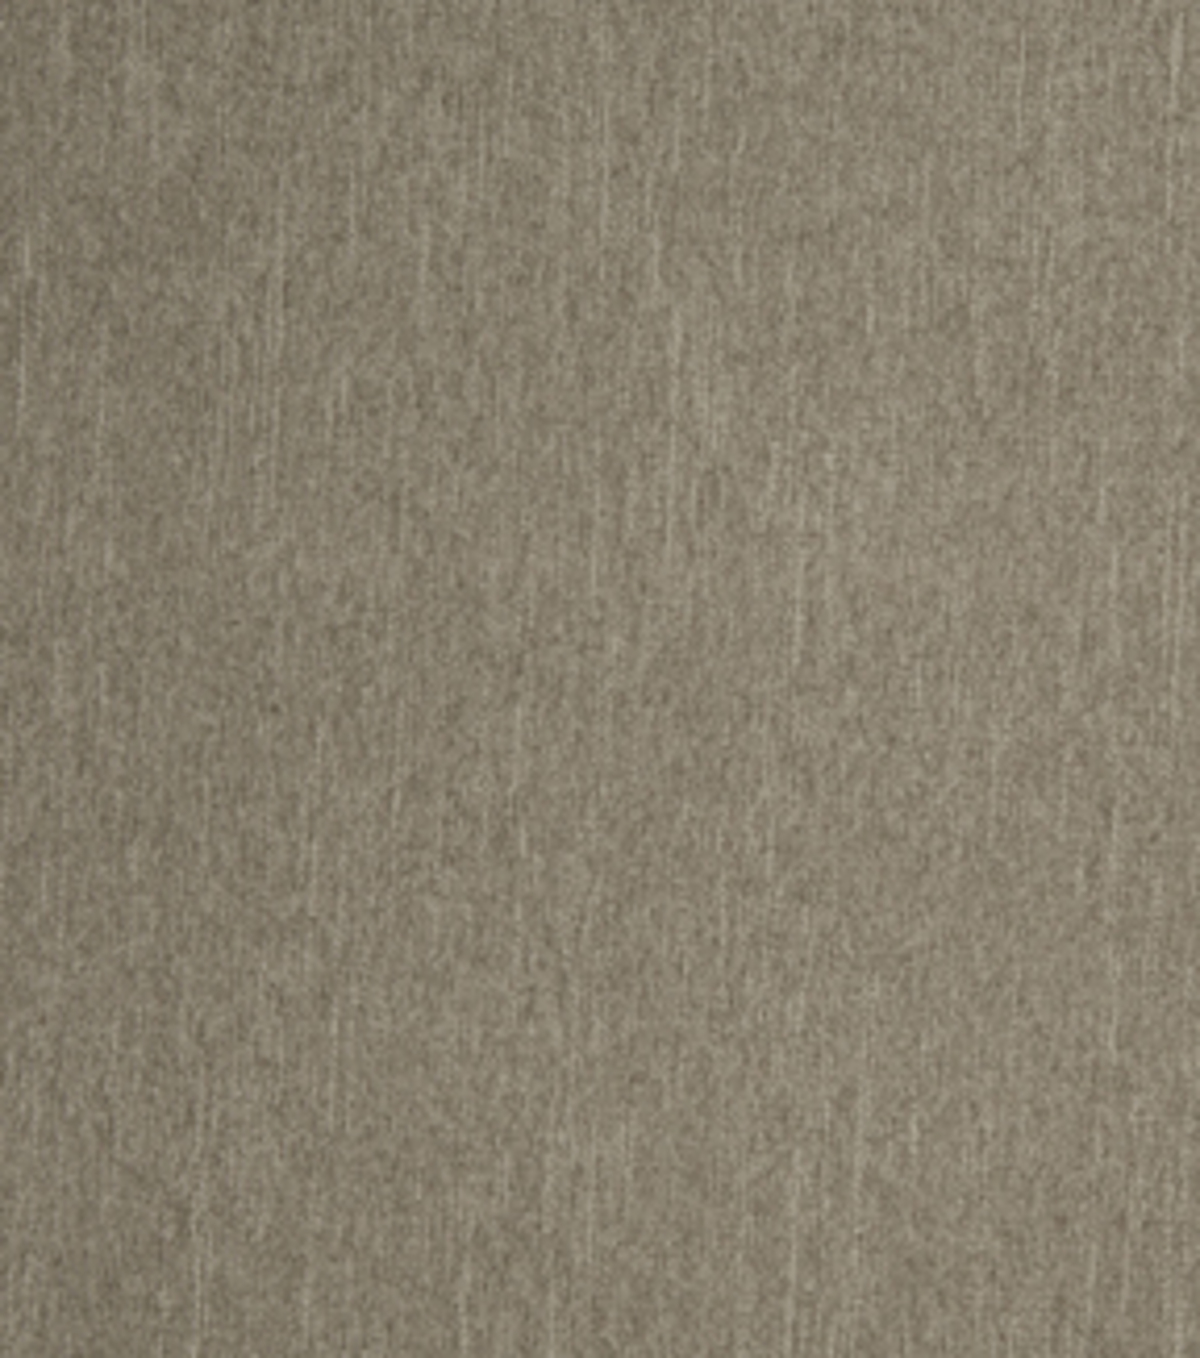 Home Decor 8\u0022x8\u0022 Fabric Swatch-Eaton Square Georgette Beaver